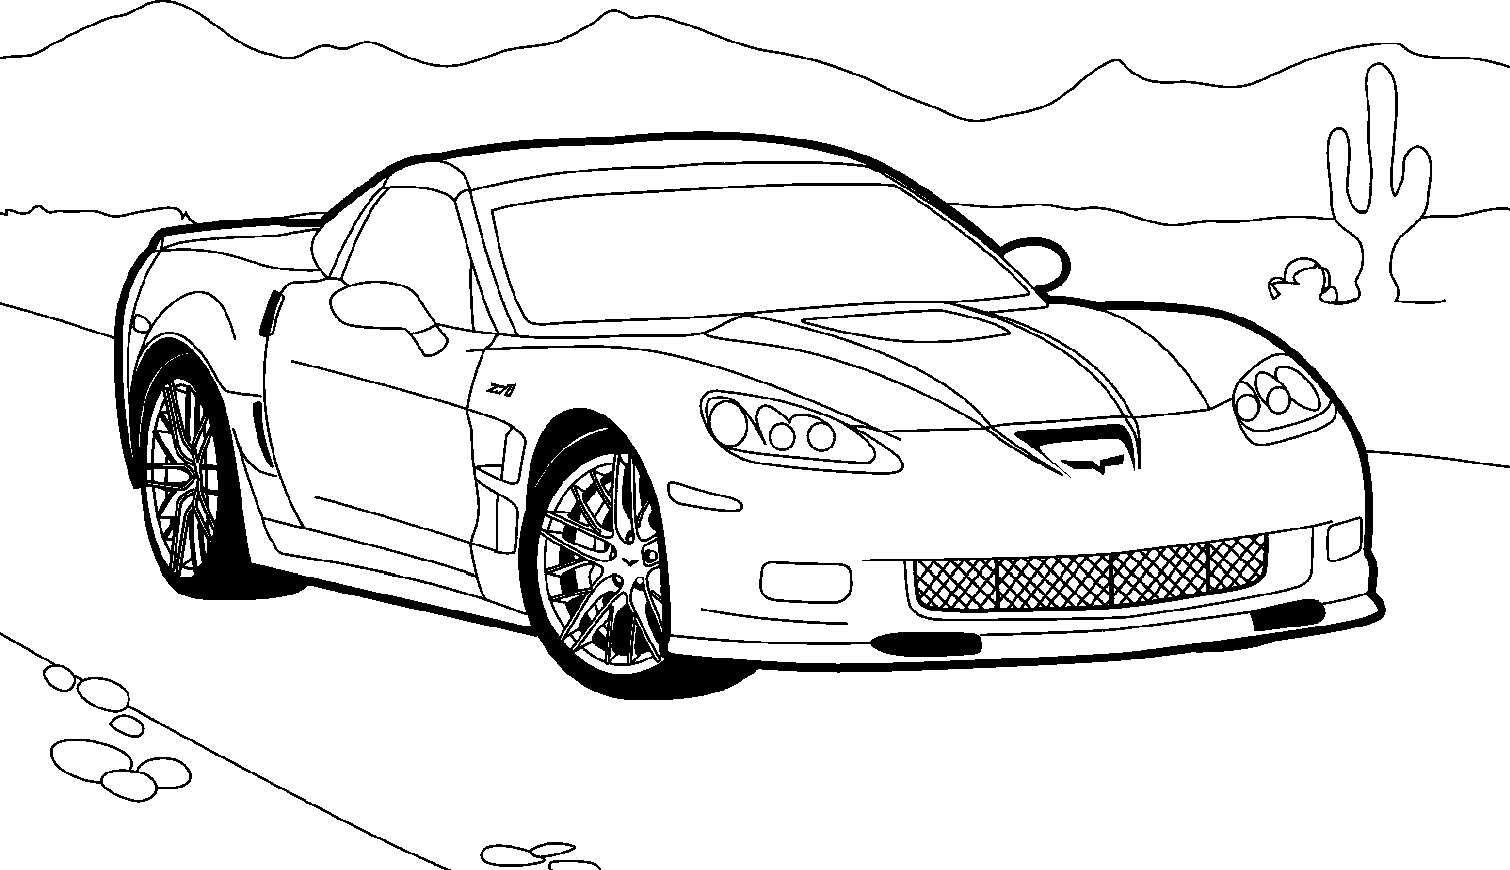 80+ Race Car Clipart Black And White   ClipartLook black and white